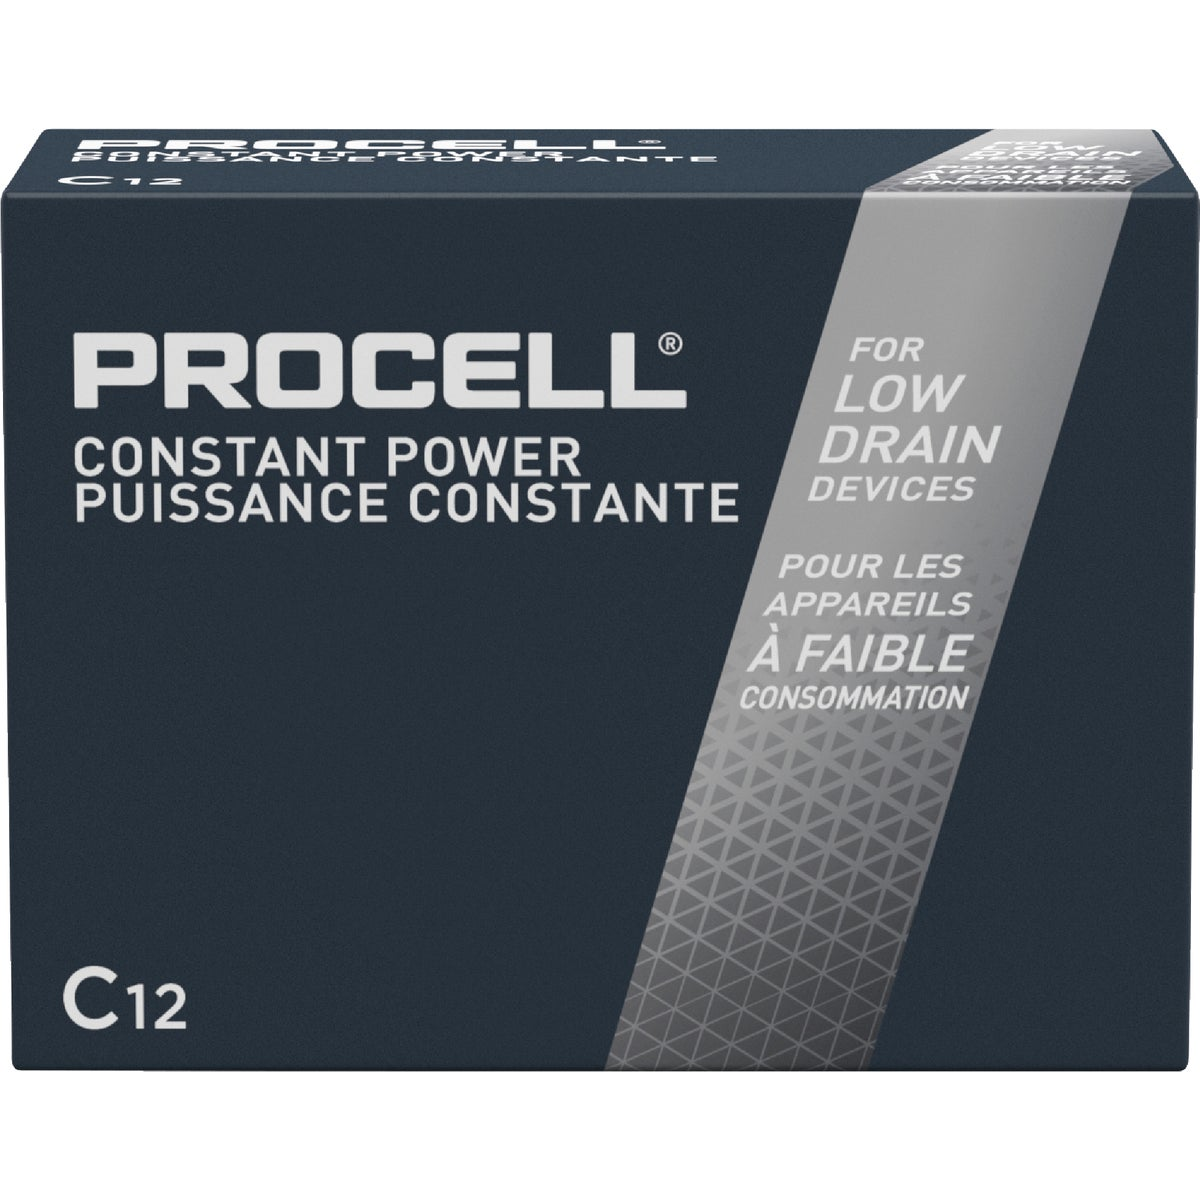 12PK C PROCELL BATTERY - 85495 by P & G  Duracell